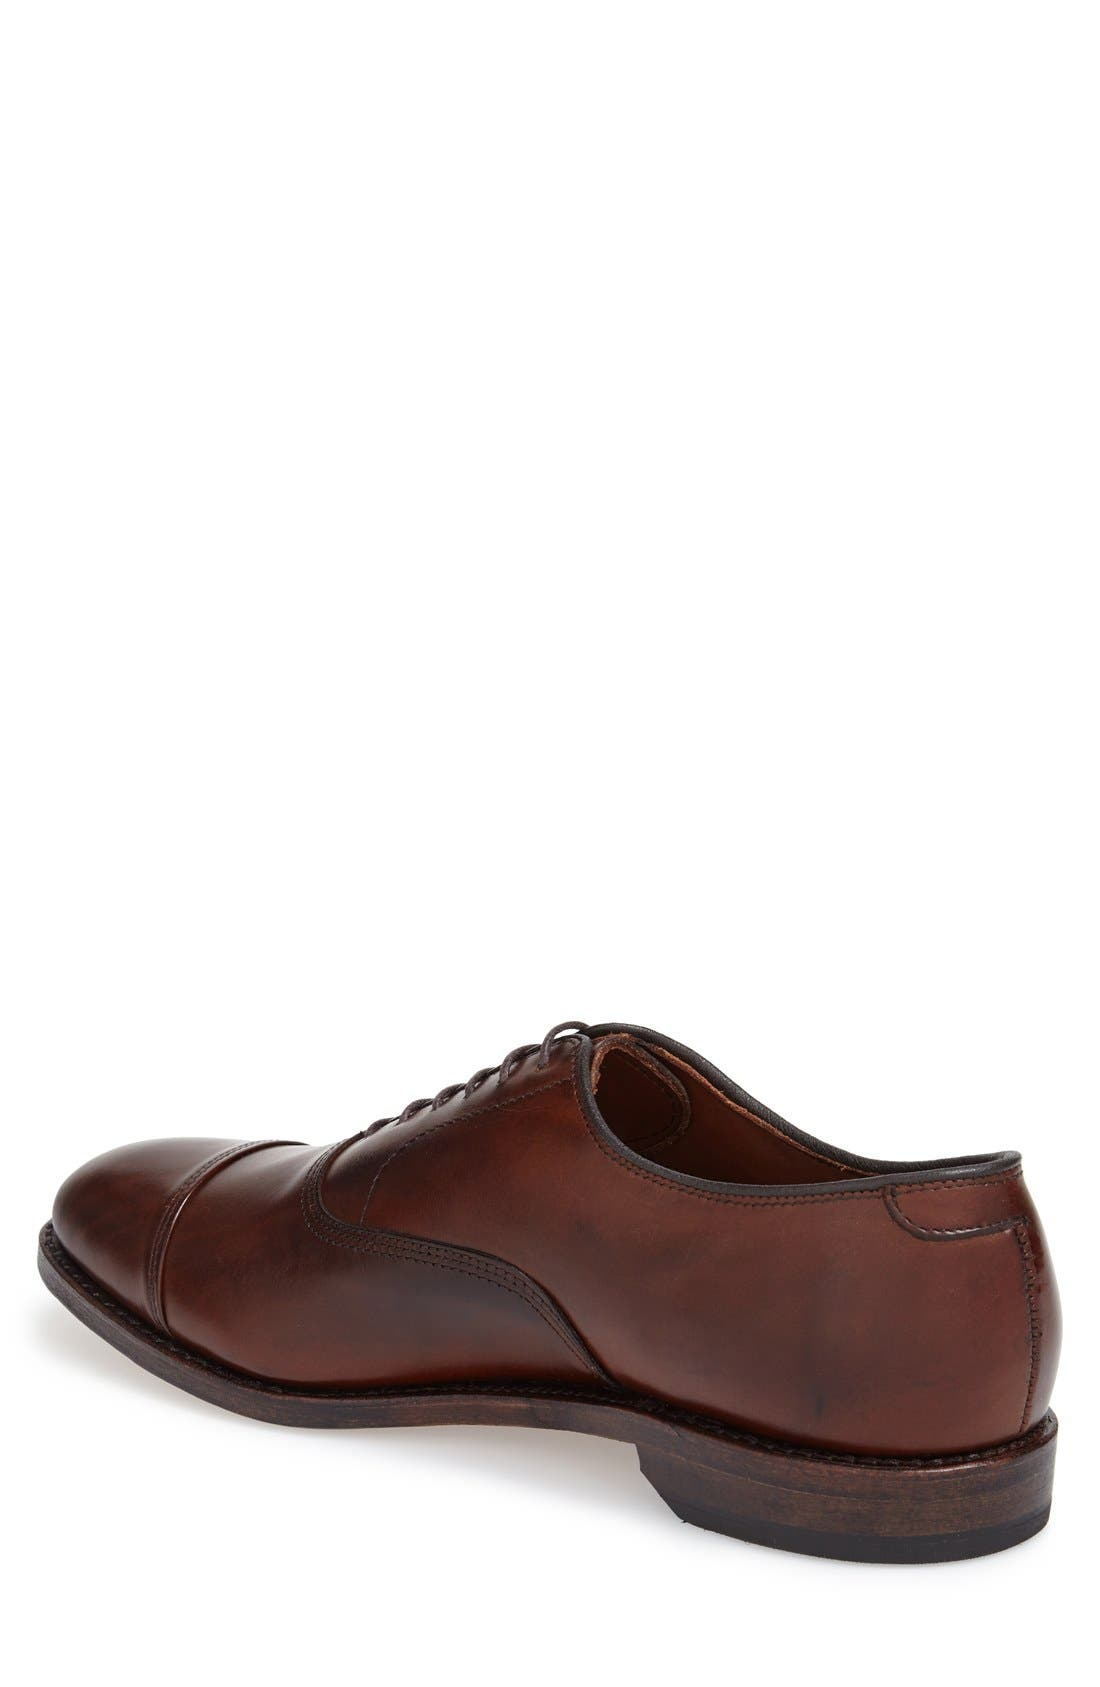 'Park Avenue' Cap Toe Oxford,                             Alternate thumbnail 2, color,                             DARK CHILI BURNISHED